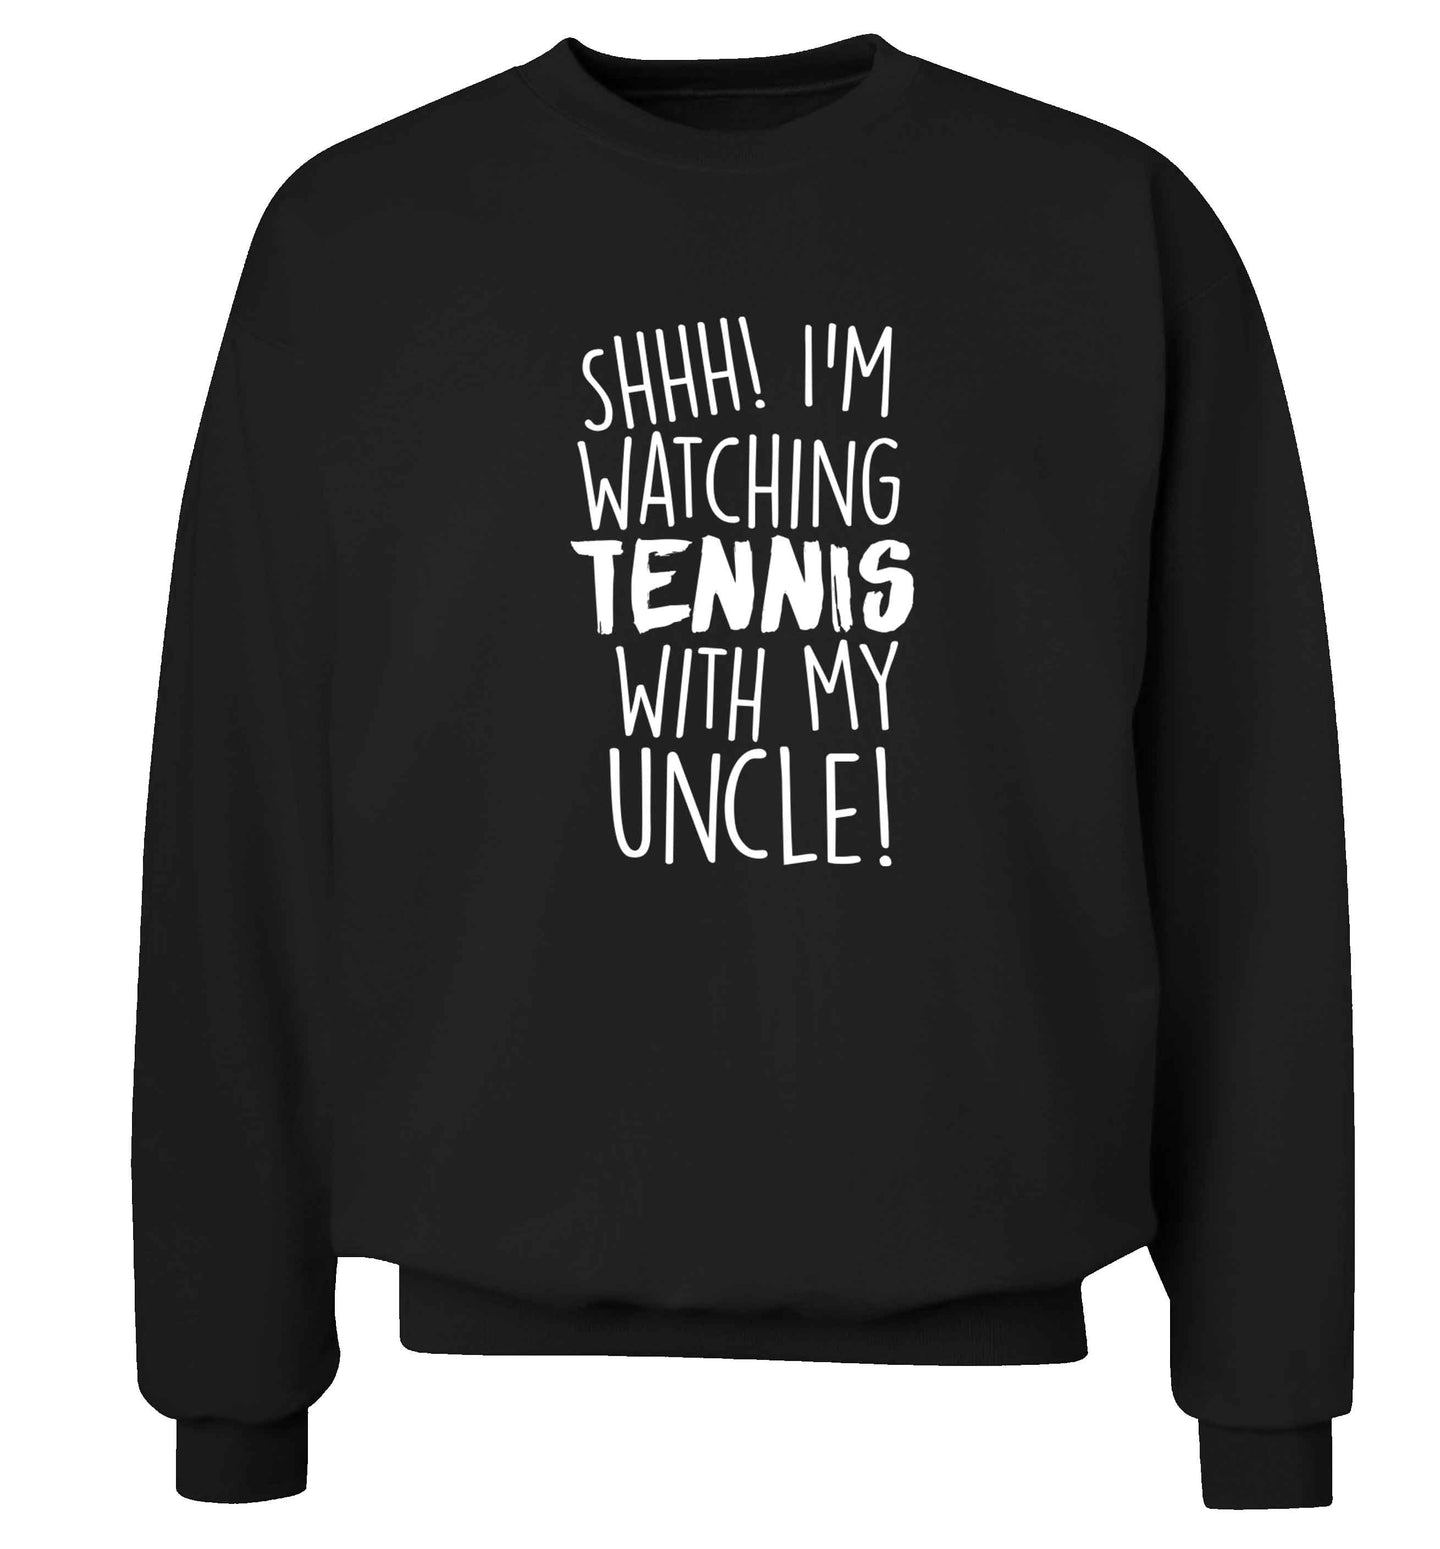 Shh! I'm watching tennis with my uncle! Adult's unisex black Sweater 2XL